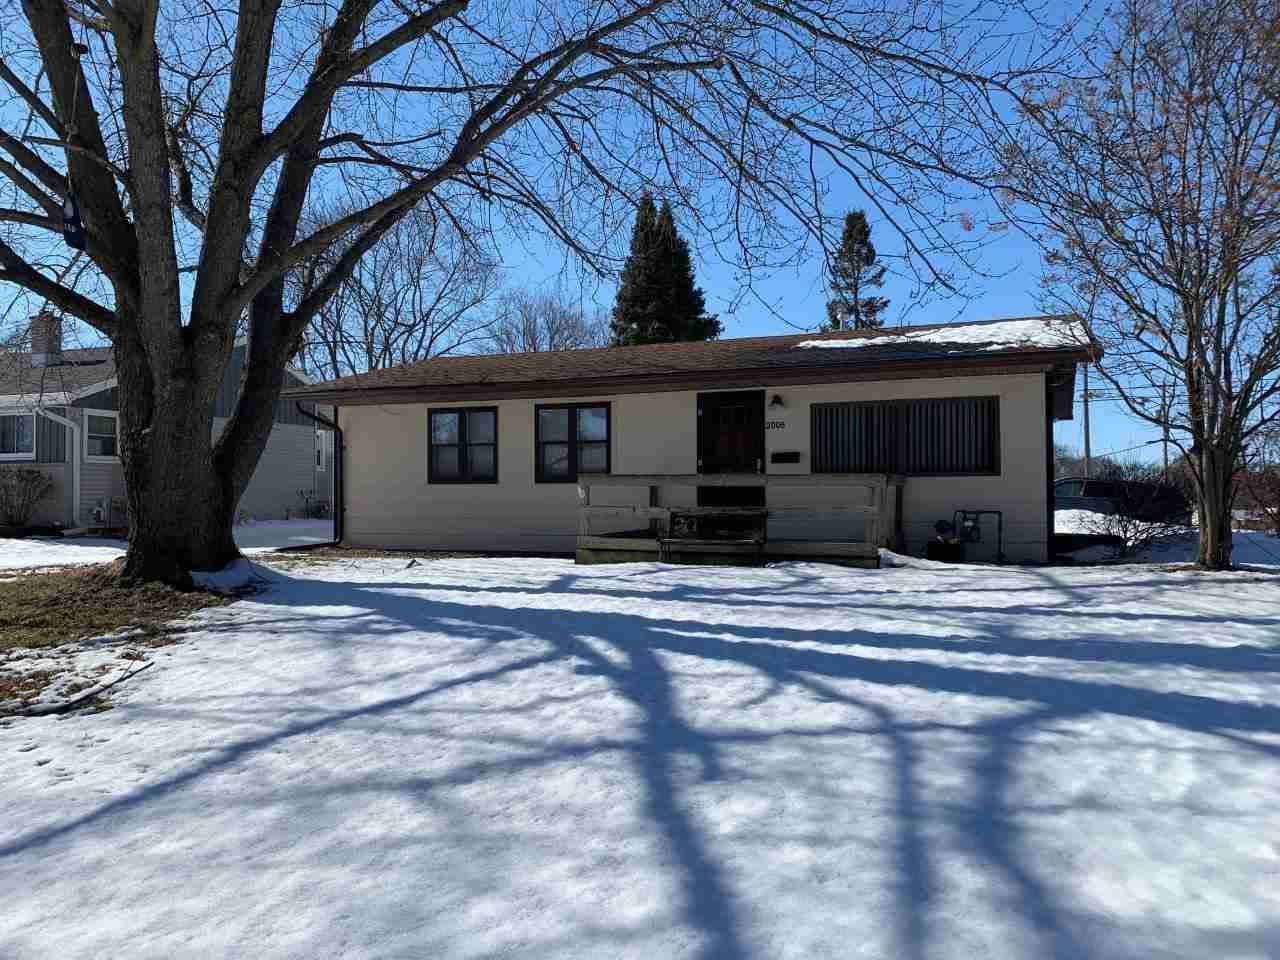 2006 S Grant Ave, Janesville, WI 53546 - #: 1877386